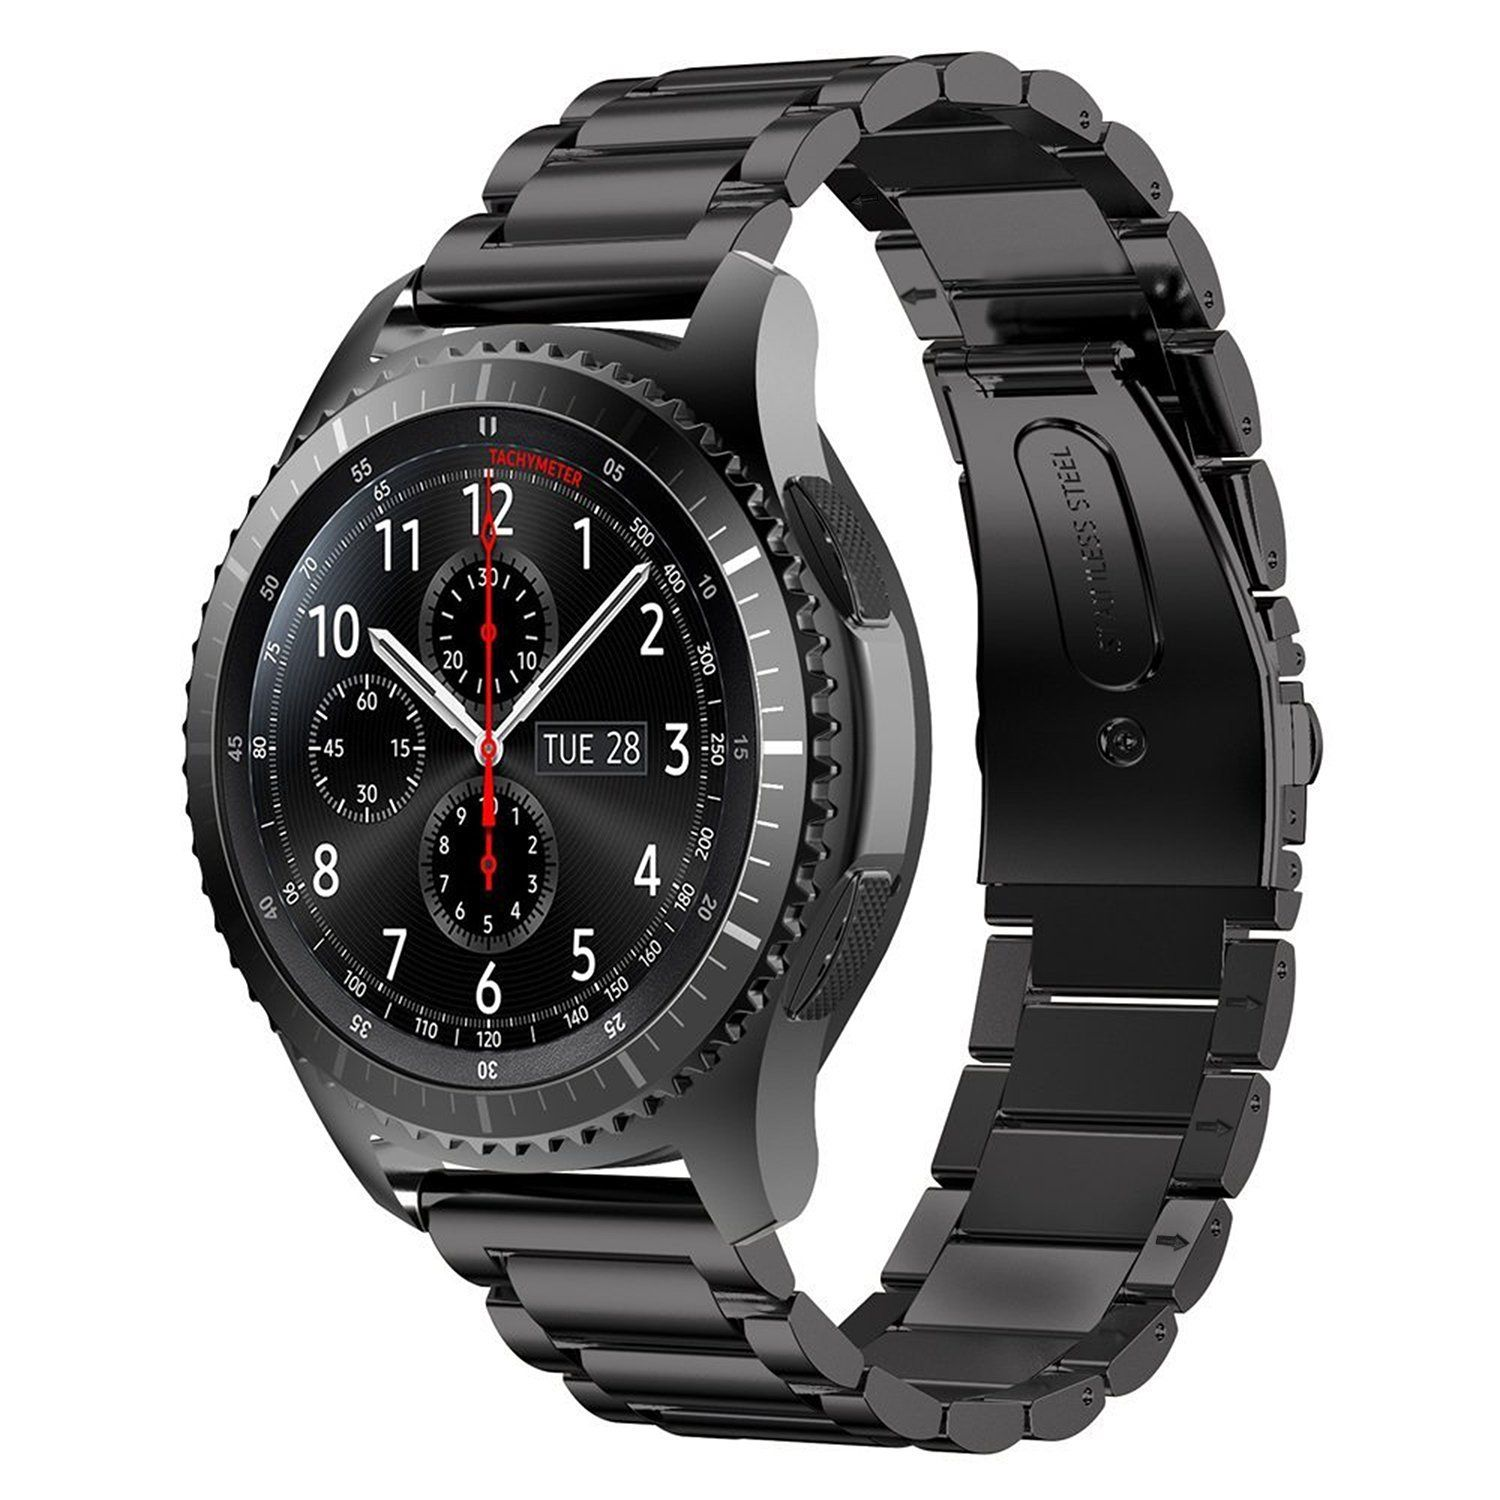 Gear S3 Classic Band Gear S3 Frontier Band Oitom Premium Solid Stainless Steel Watch Band Link Bracelet Strap for Samsung Gear S3 Classic Gear S3 Frontier